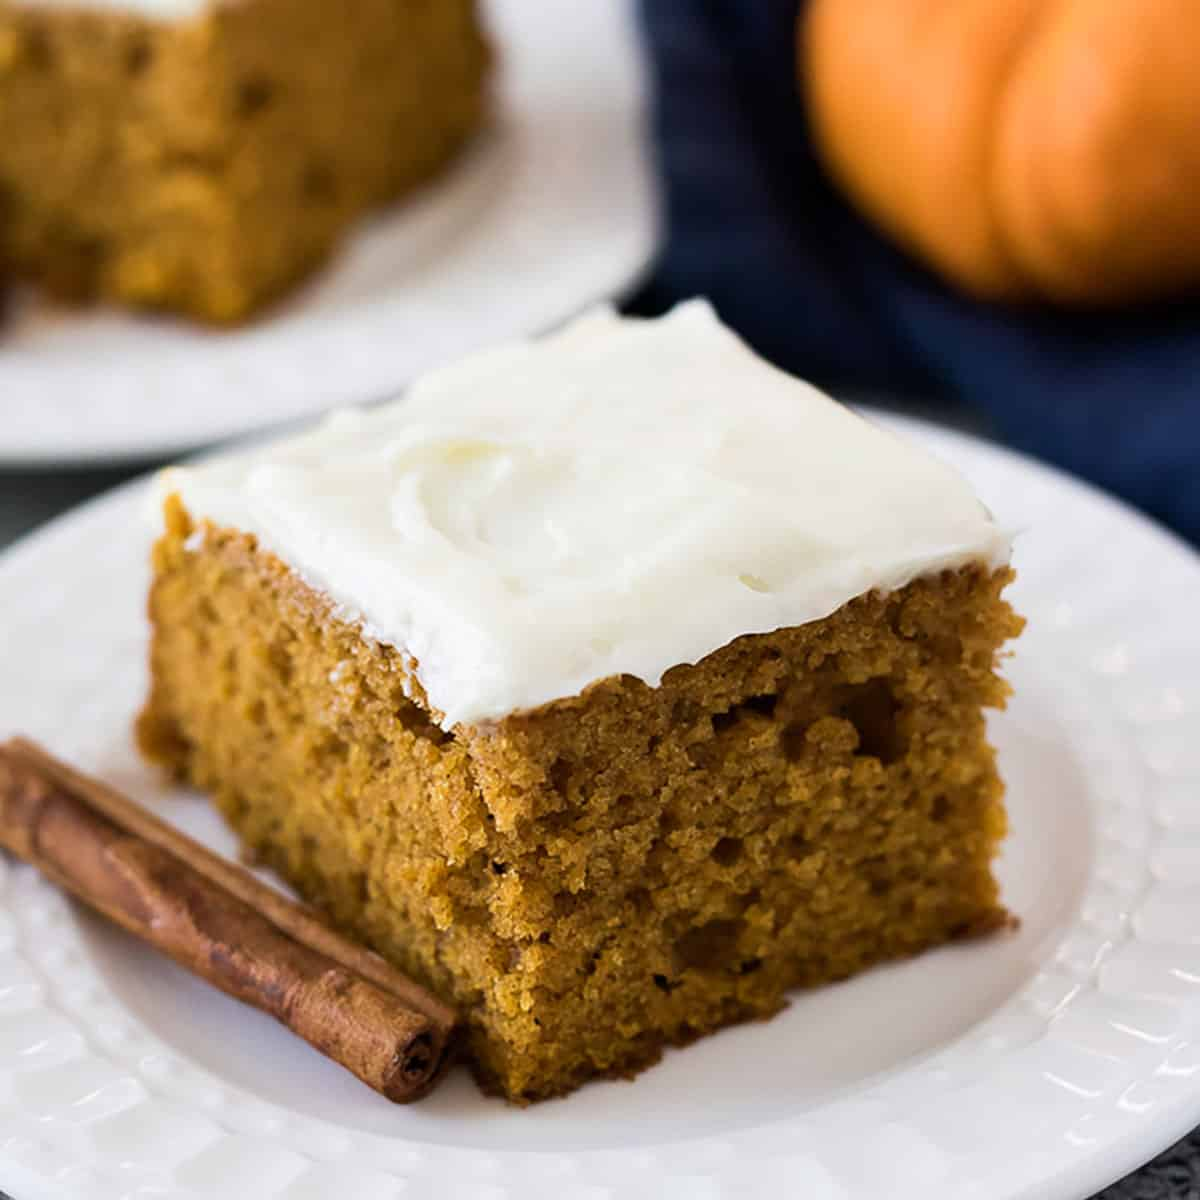 Slice of pumpkin cake with frosting on a white plate.